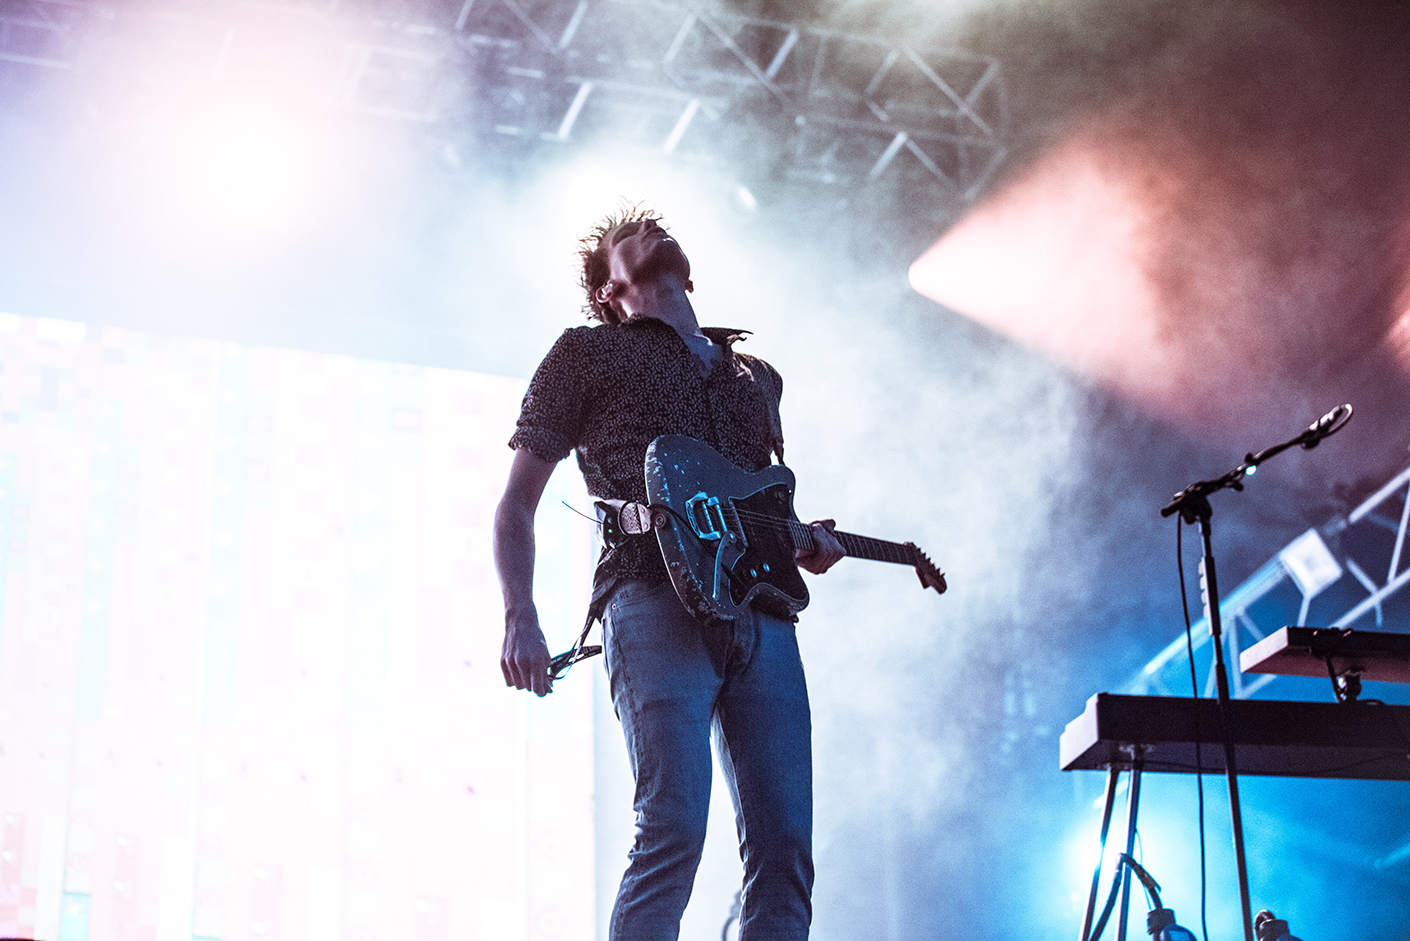 live review falls festival byron bay photo credit dominique berns blackwell savage thrills savagethrills 11